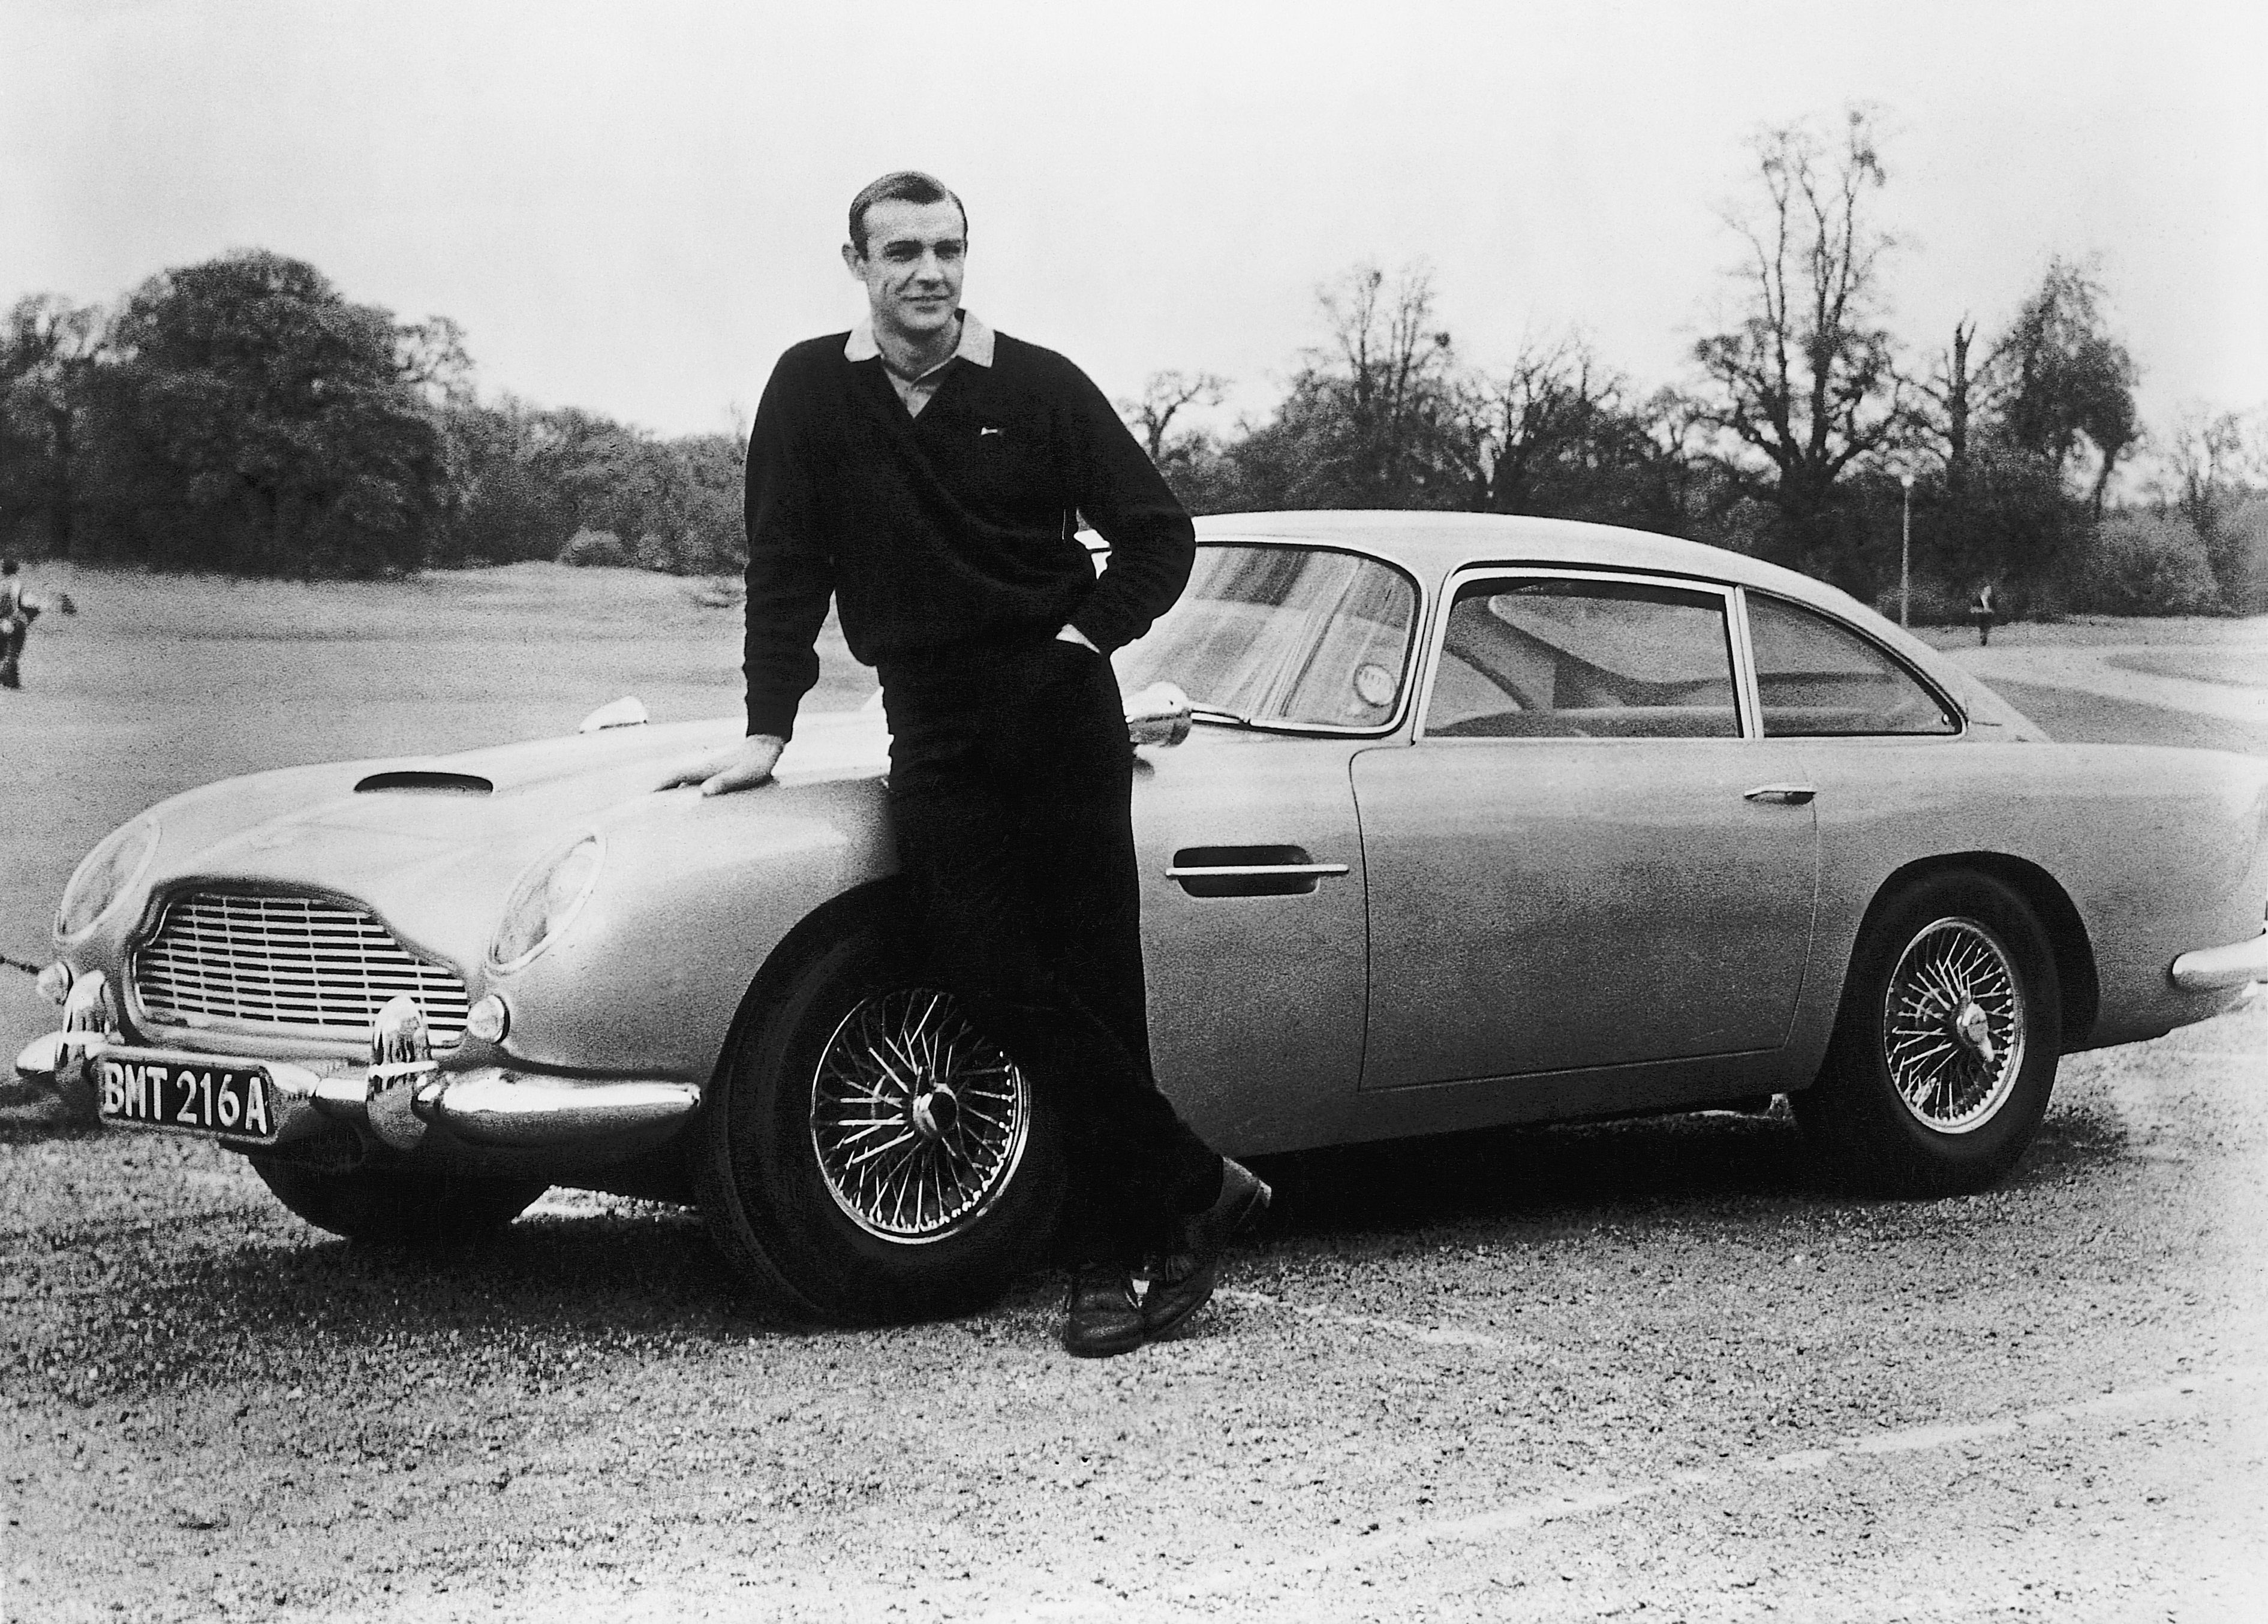 Αποτέλεσμα εικόνας για sean connery with his aston martin db5 goldfinger